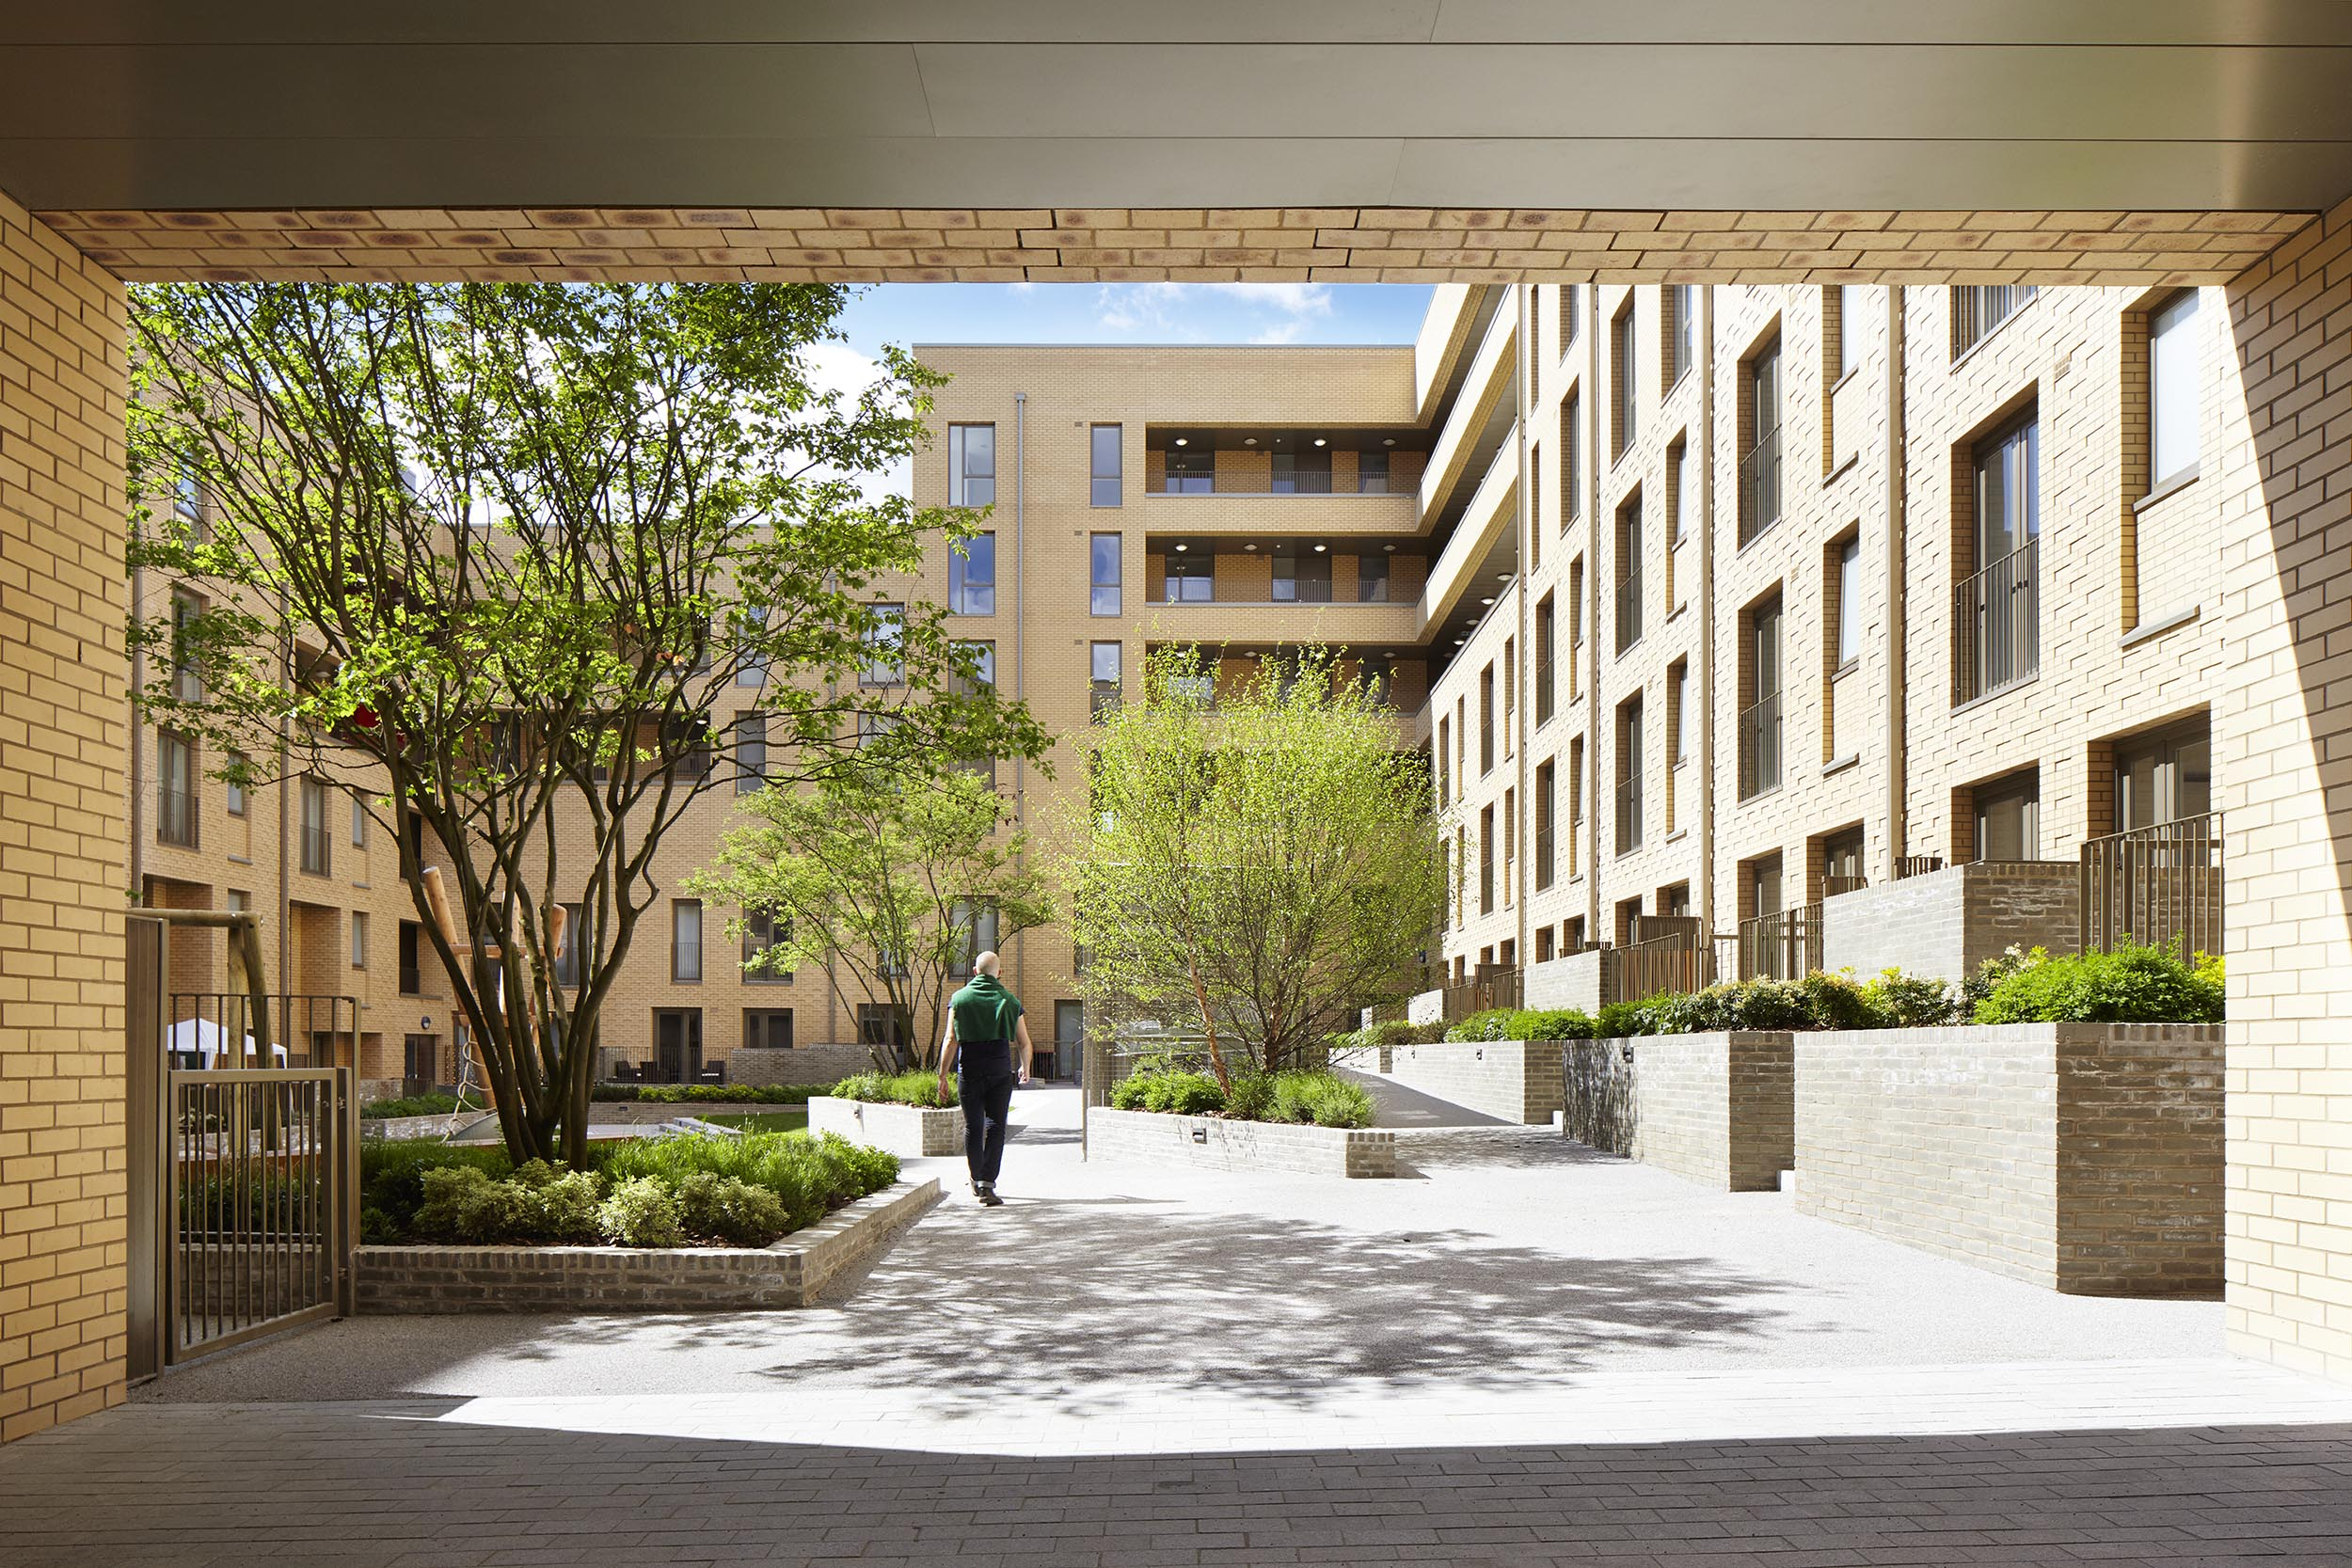 Shared courtyard provides green space for private and social tenure homes; photo ©Jack Hobhouse.